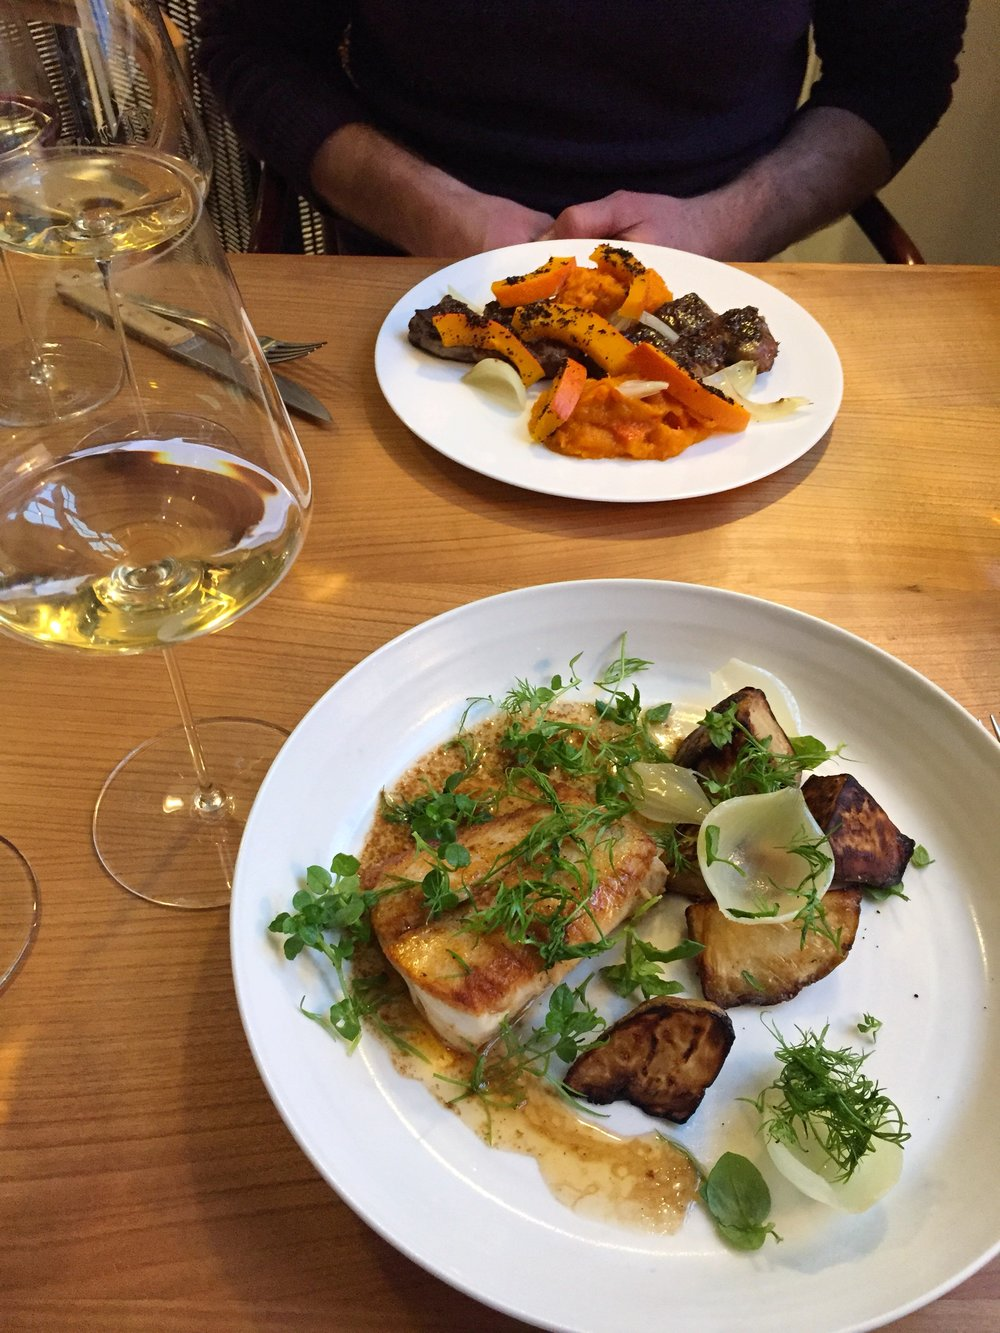 Our delicious lunch at Admiralgade 26 in Copenhagen